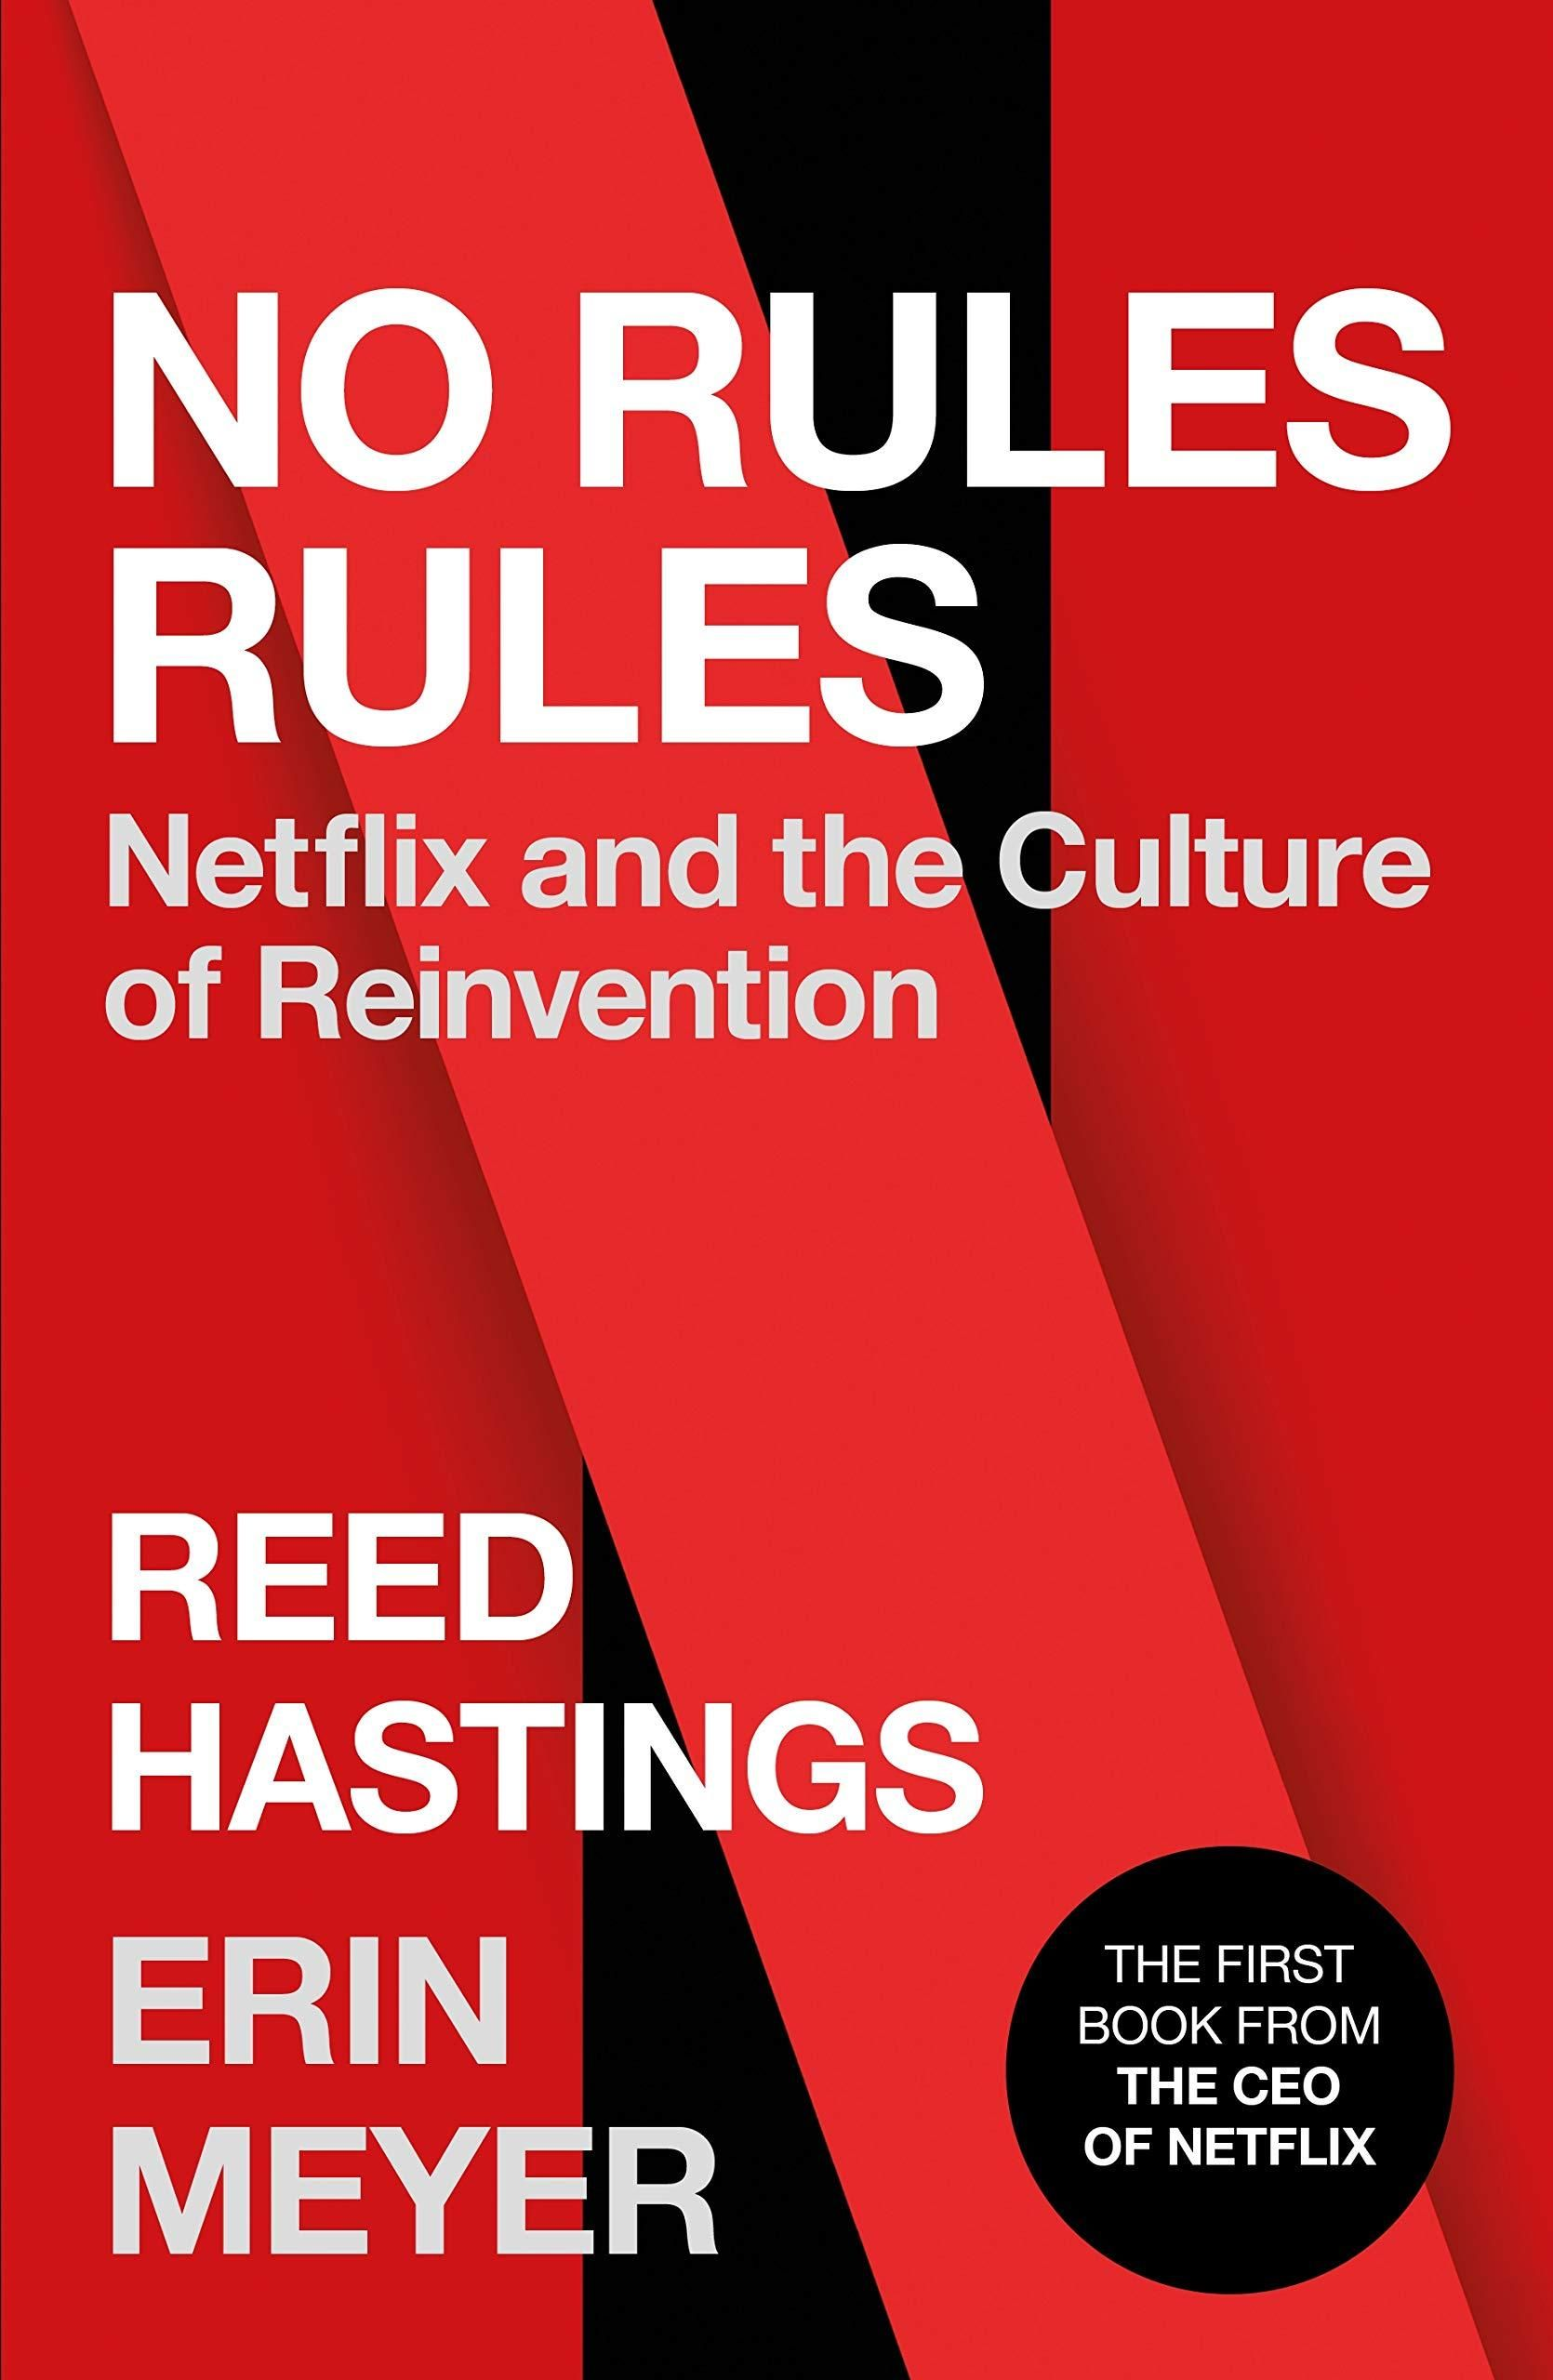 E Book Download No Rules Rules Netflix And The Culture Of Reinvention Full Free Collection Business Books Reed Hastings Netflix